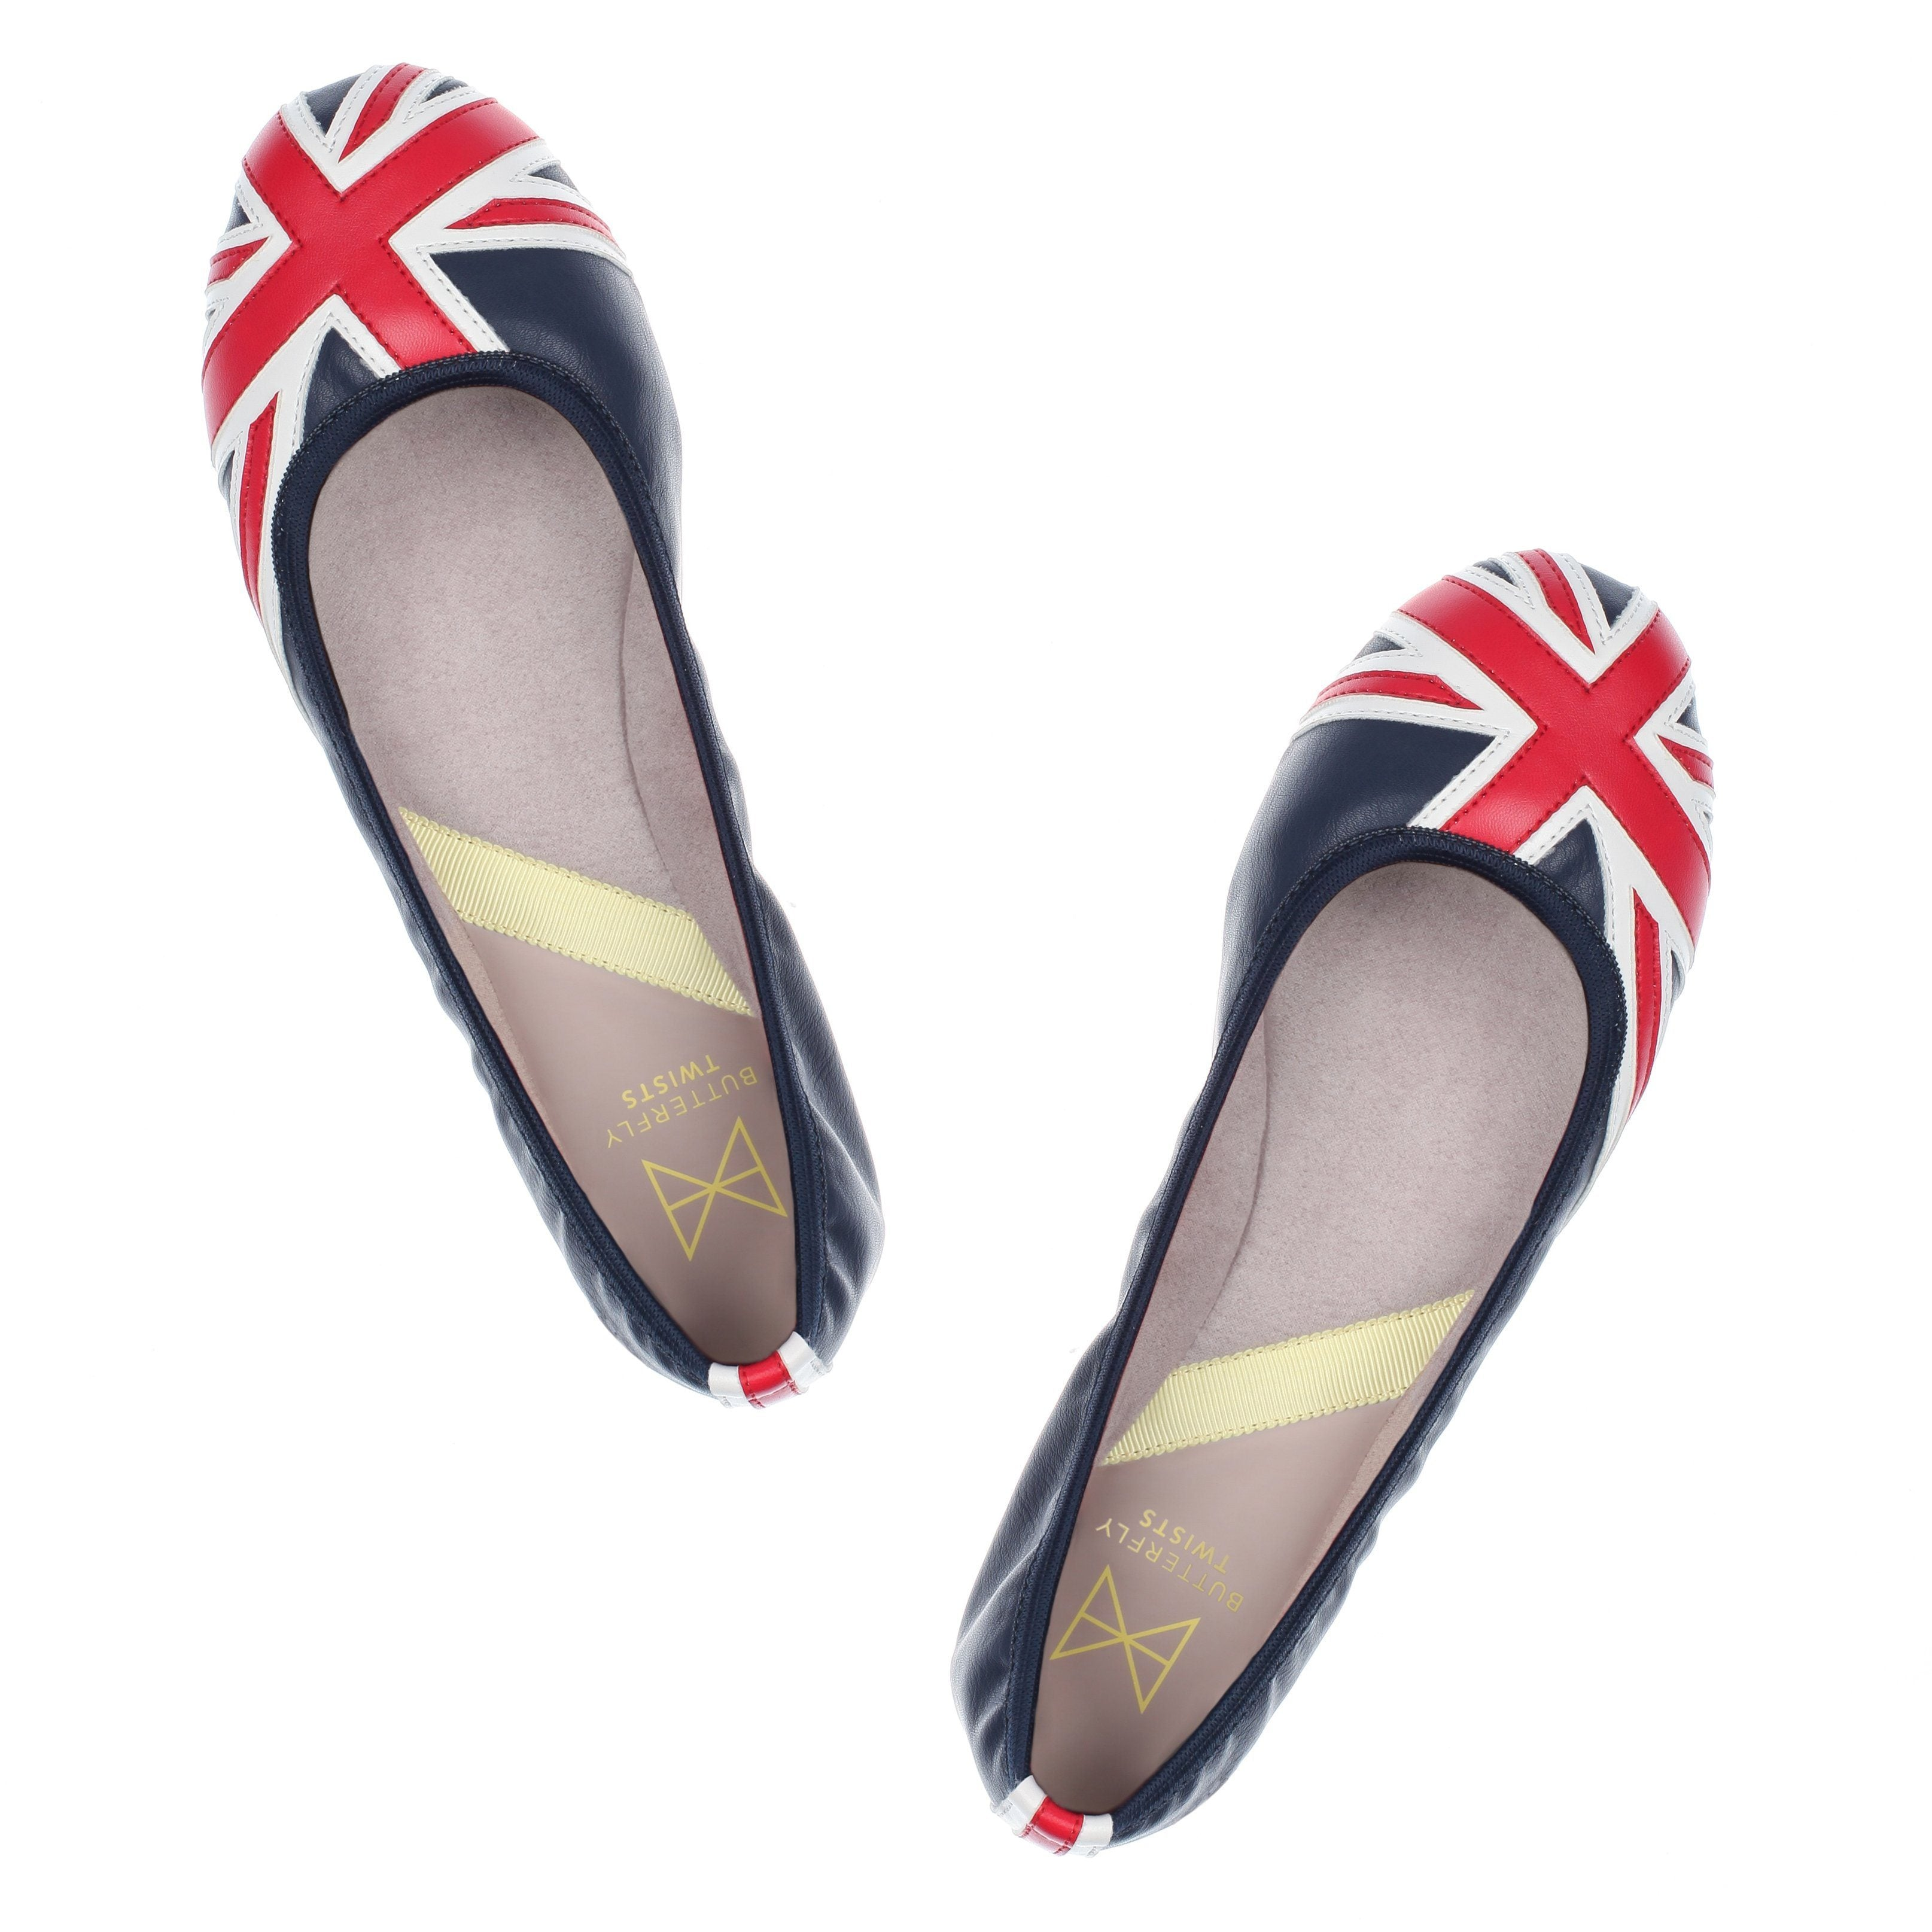 Our iconic style that takes the DNA of Butterfly Twists and gives it a modern twist to bring you bright, bold ballerinas! The original Union Jack Ballet Flat. Soft faux leather upper Super comfy memory foam insole Folding Twist Tech Technology Our patented, lightweight, non-slip resistant sole Moisture wicking lining Drawstring dust bag included We deliver to over 50 countries worldwide. to see which countries we deliver to please visit our FAQ section. We accept unworn products purchased exclus